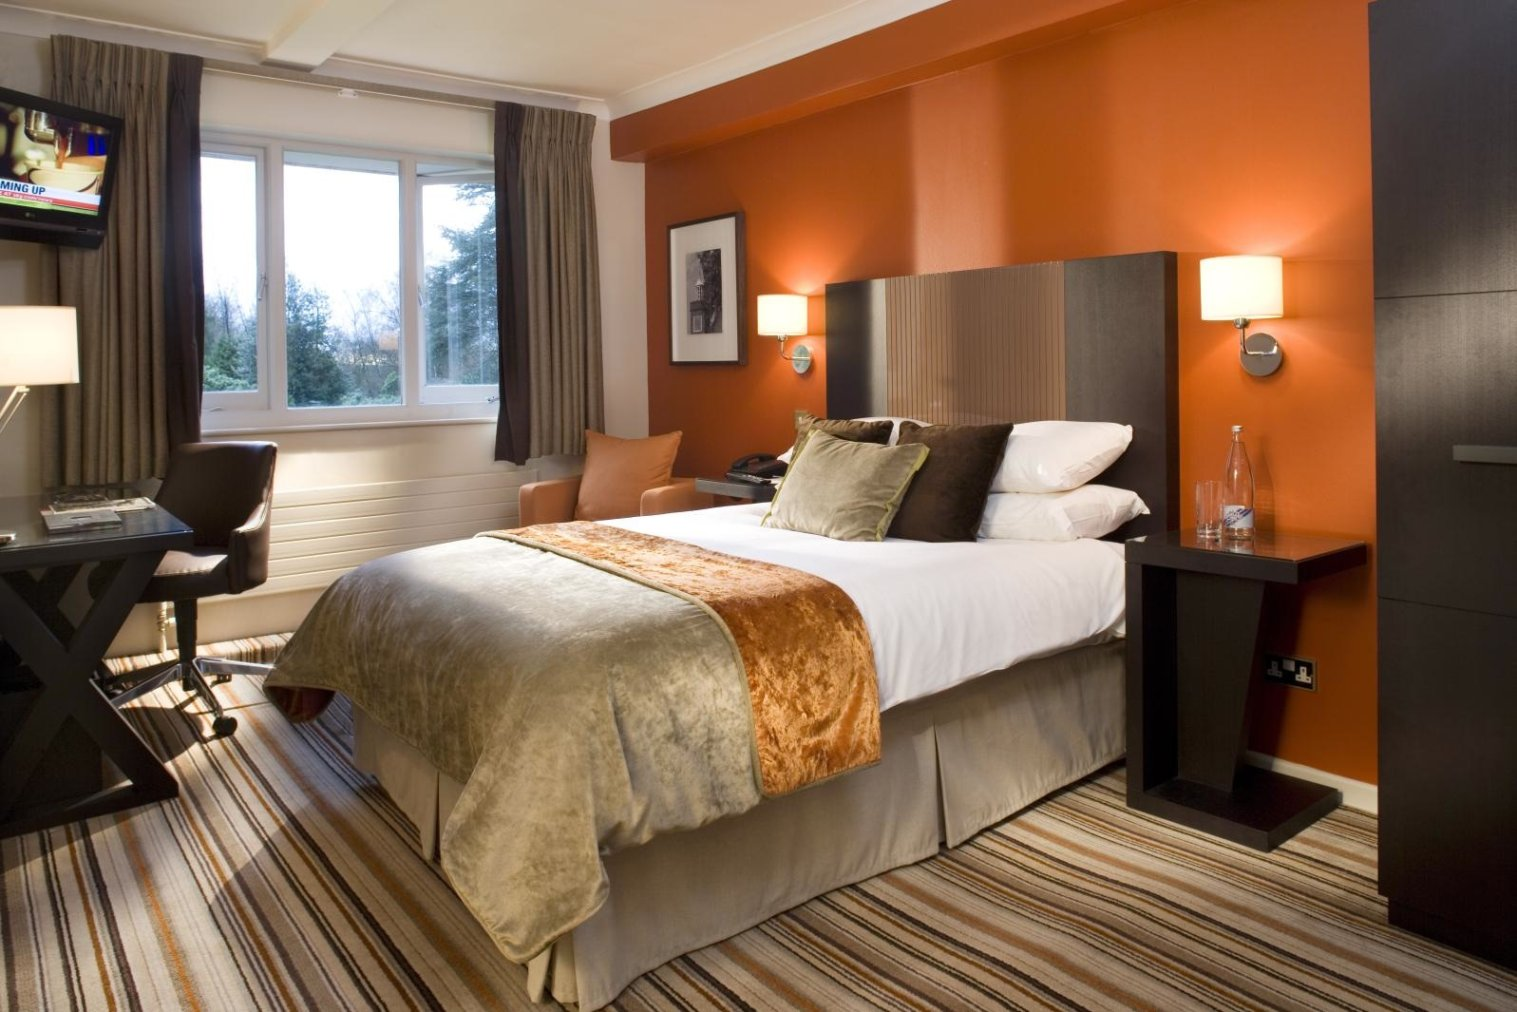 orange bedrooms. 30 orange bedroom ideasbest 25 orange bedrooms